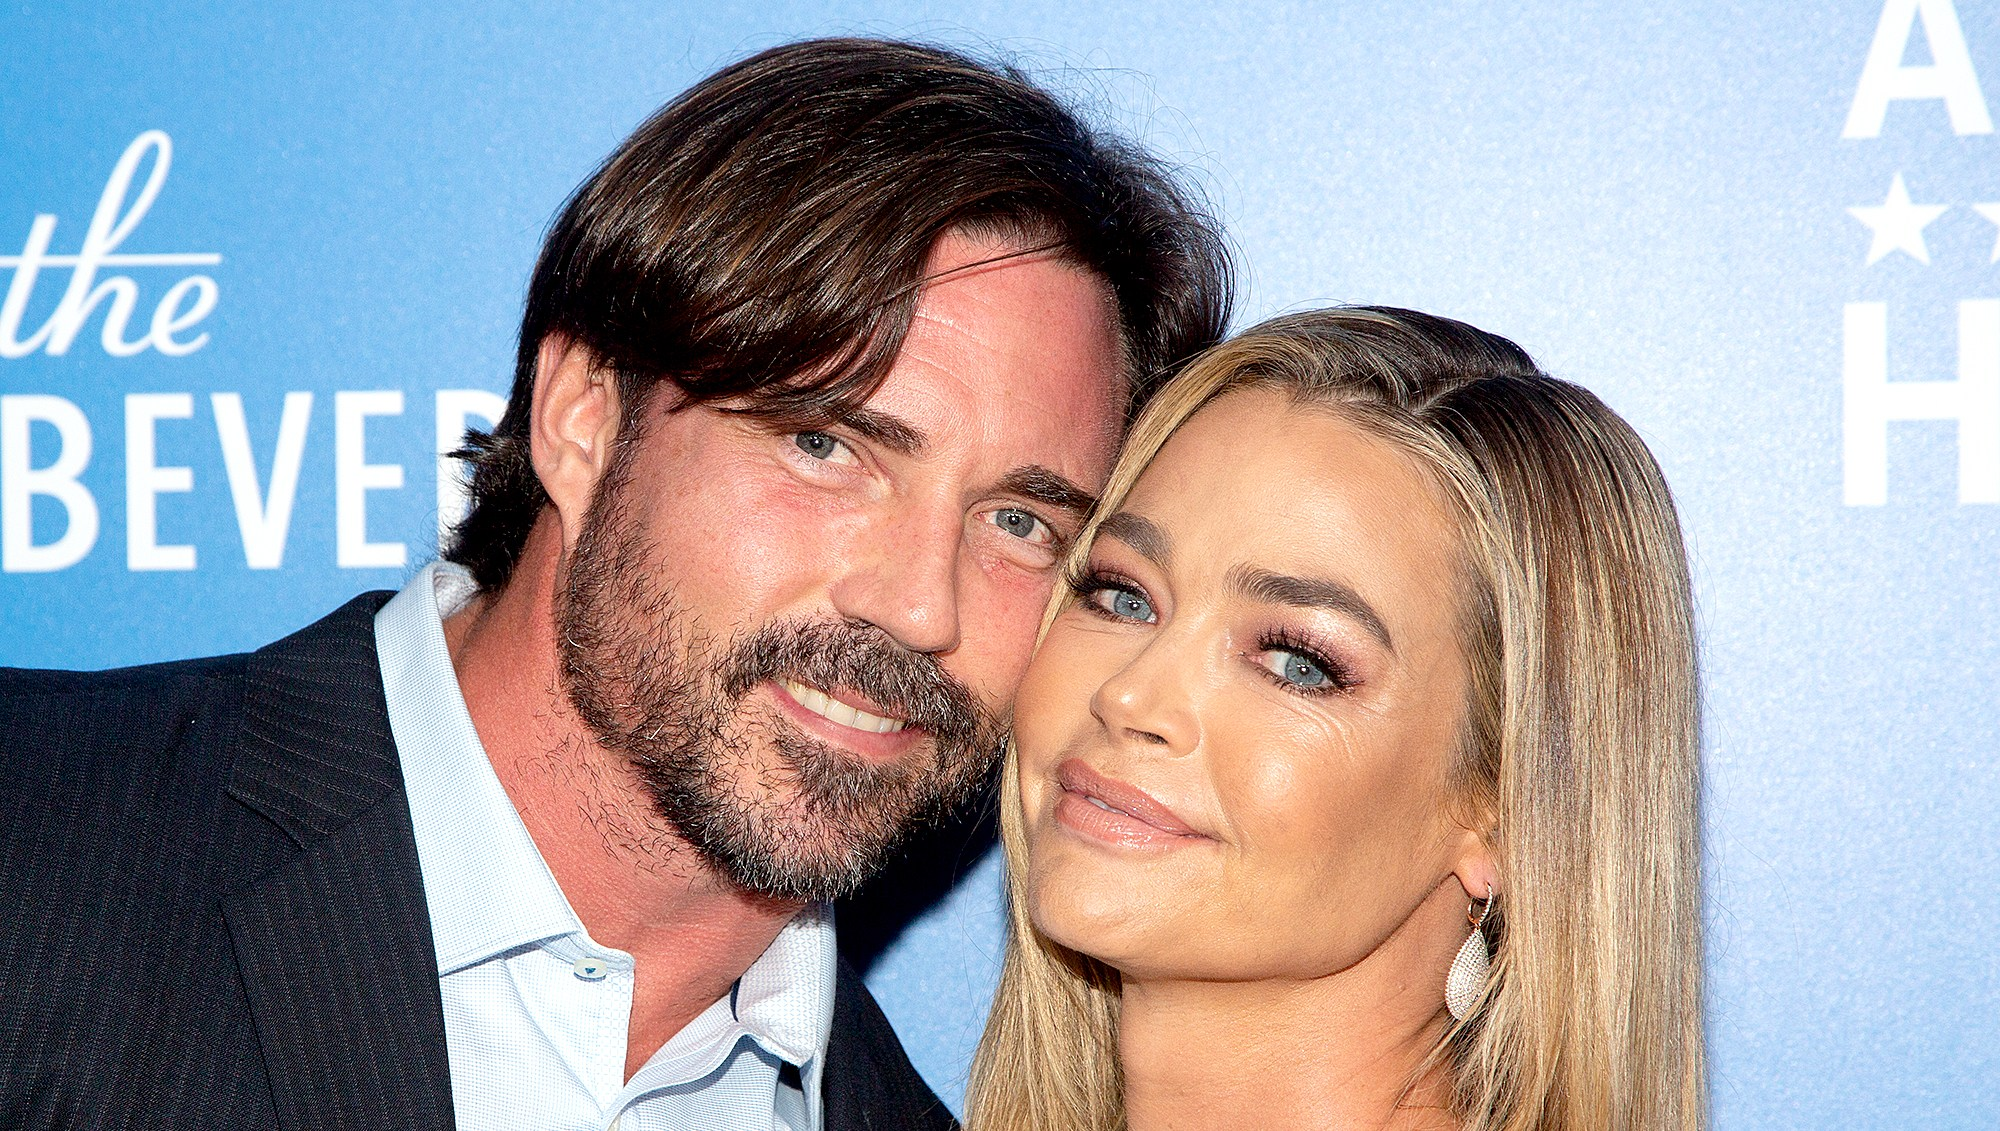 Denise Richards Encouraged Husband Aaron Phypers to Get a 'Happy Ending' Massage: 'You Have to Try It'